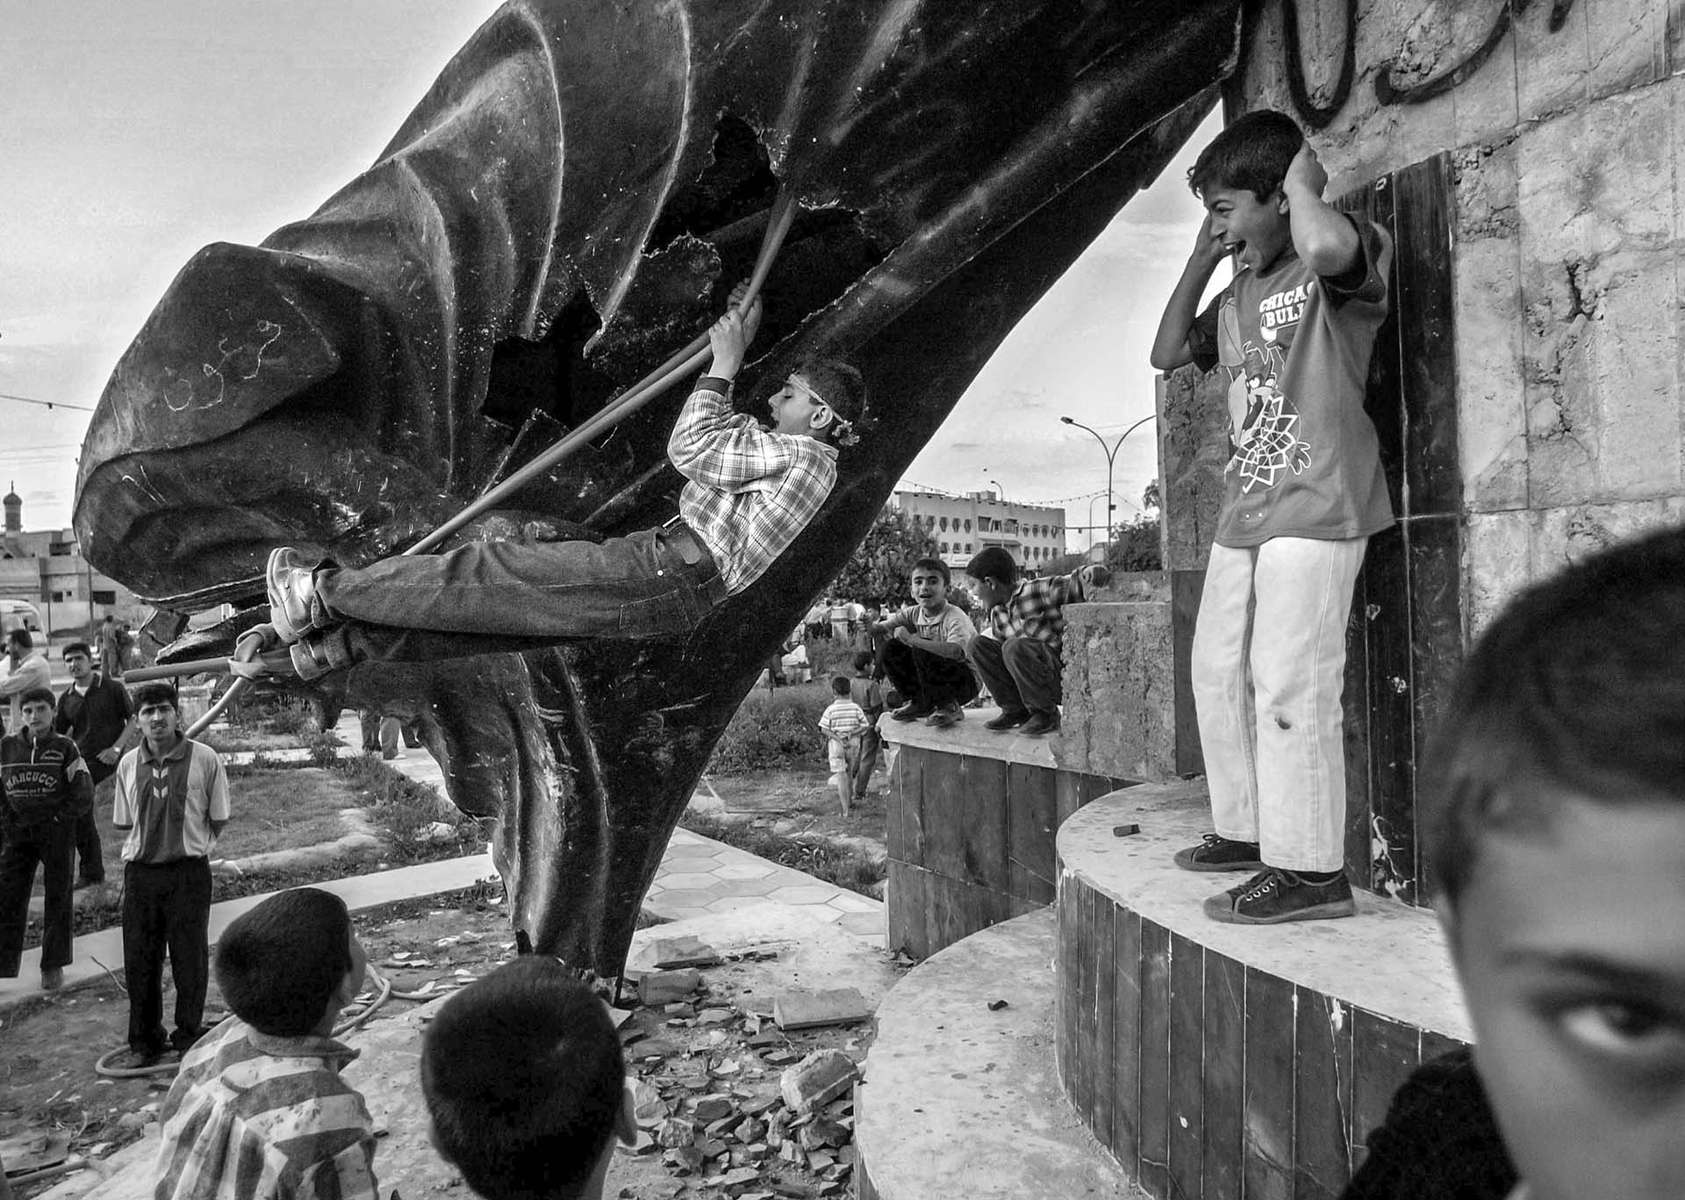 Kurdish children found a new use of Saddam's statue , making into a swing at a main square in northern Iraqi town of Kirkuk.